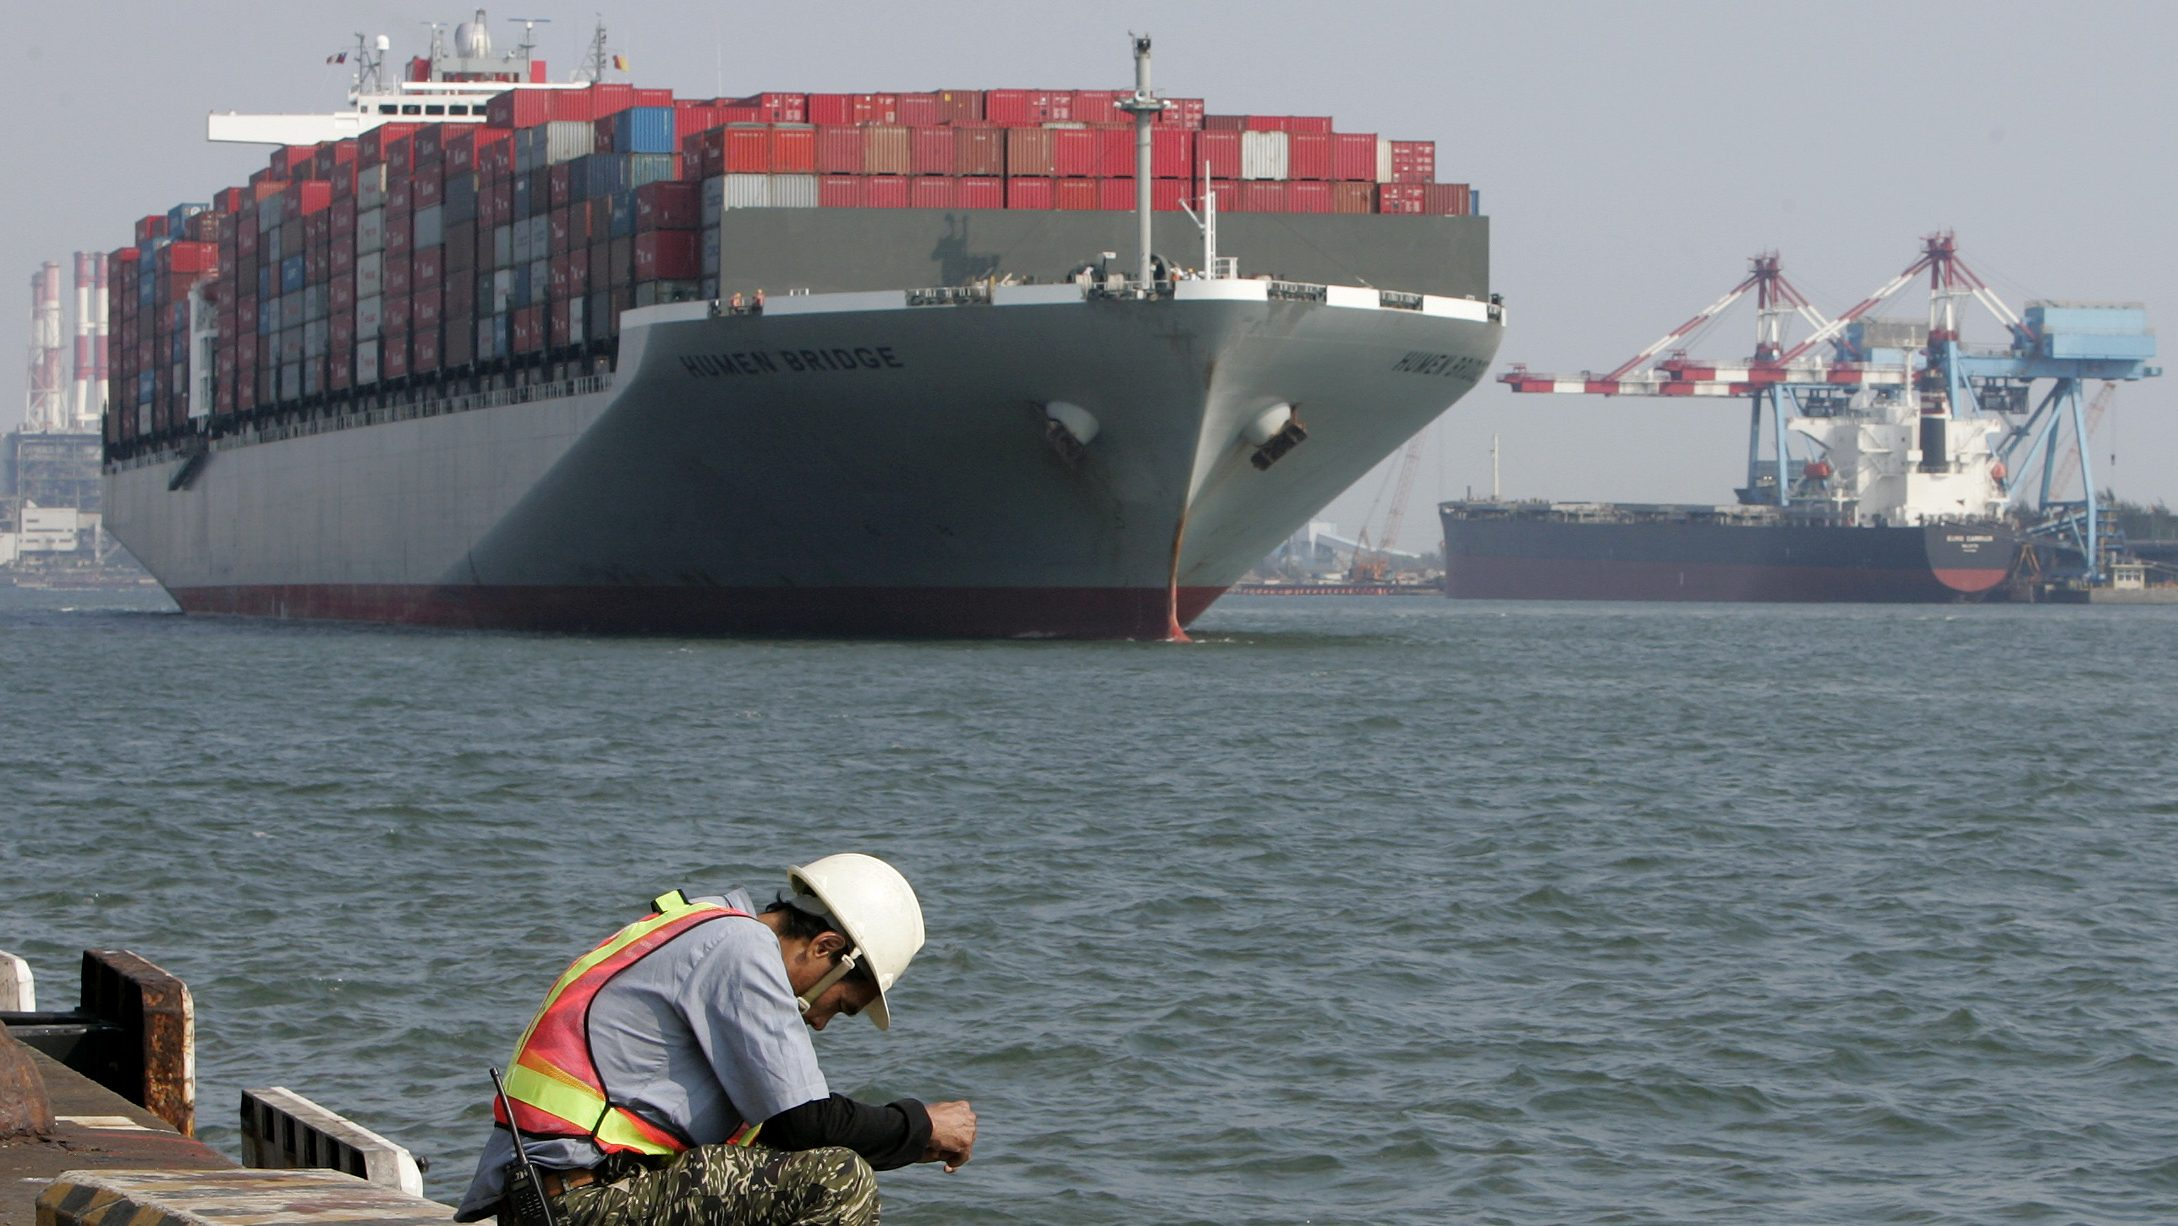 A man sits at the wharf of the Port of Kaohsiung in southern Taiwan May 12, 2009. Three major Chinese shipping companies plan to invest in the biggest Taiwanese port in Kaohsiung, a top port official said on Tuesday, as China and Taiwan forge closer trade ties. REUTERS/Pichi Chuang (TAIWAN BUSINESS) - GM1E55C1HIO01